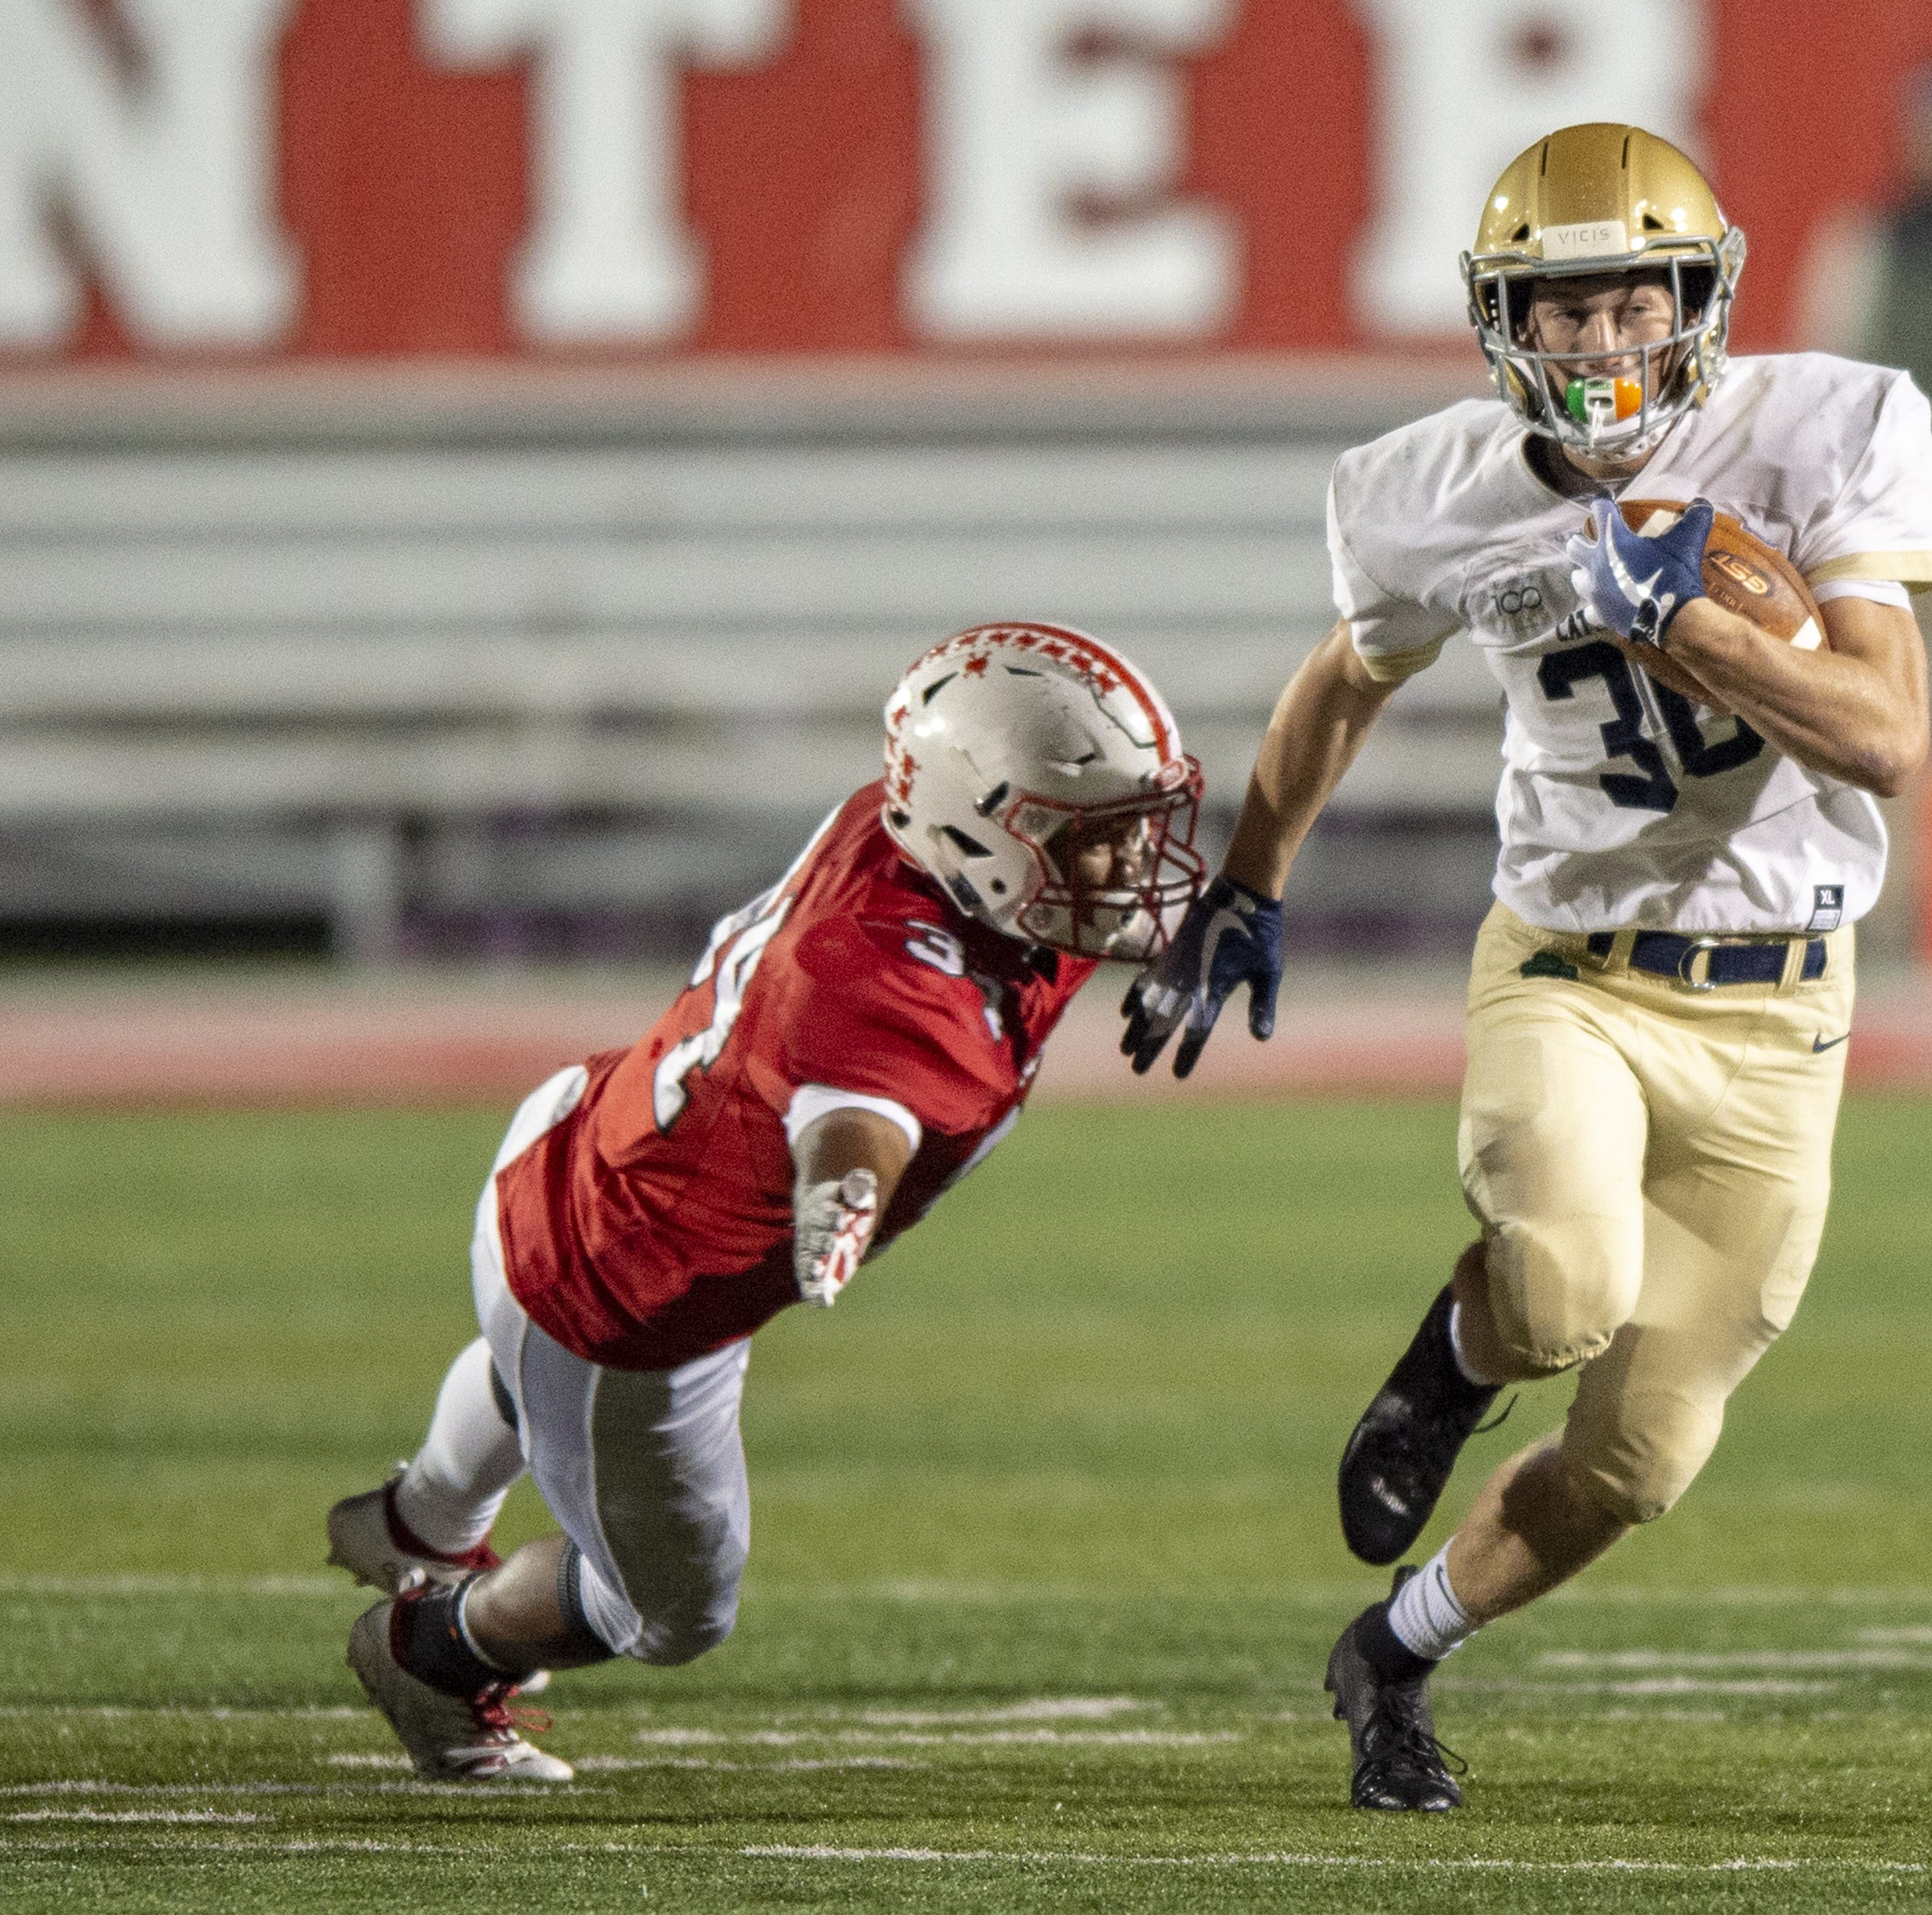 Indiana high school football sectional scores, updates, highlights and more